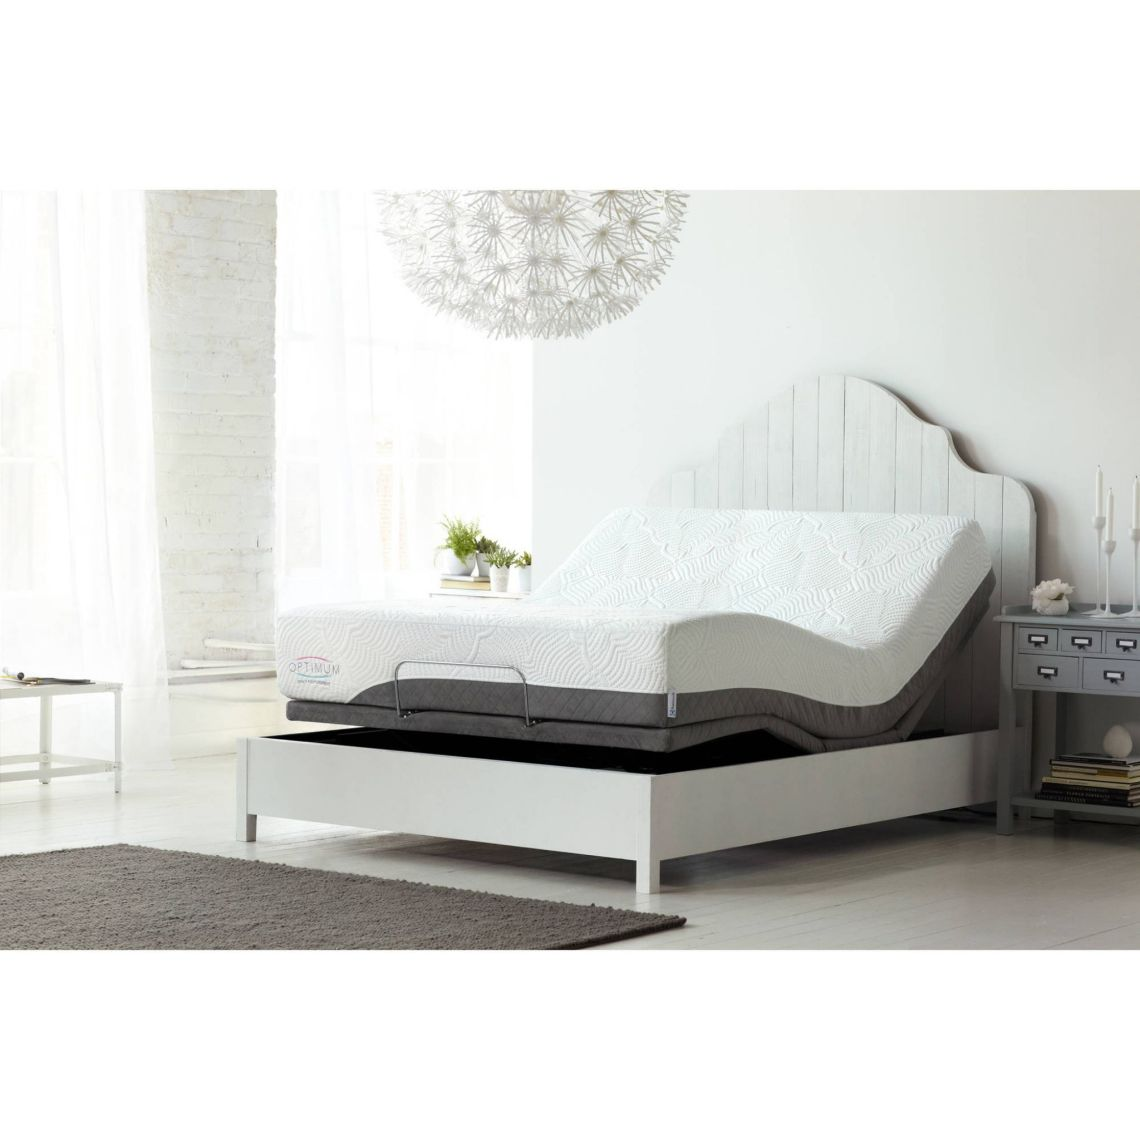 "Optimum Latex By Sealy Posturepedic Dreams Cushion Firm 10"" Mattress, Multiple Sizes - Walmart.com"